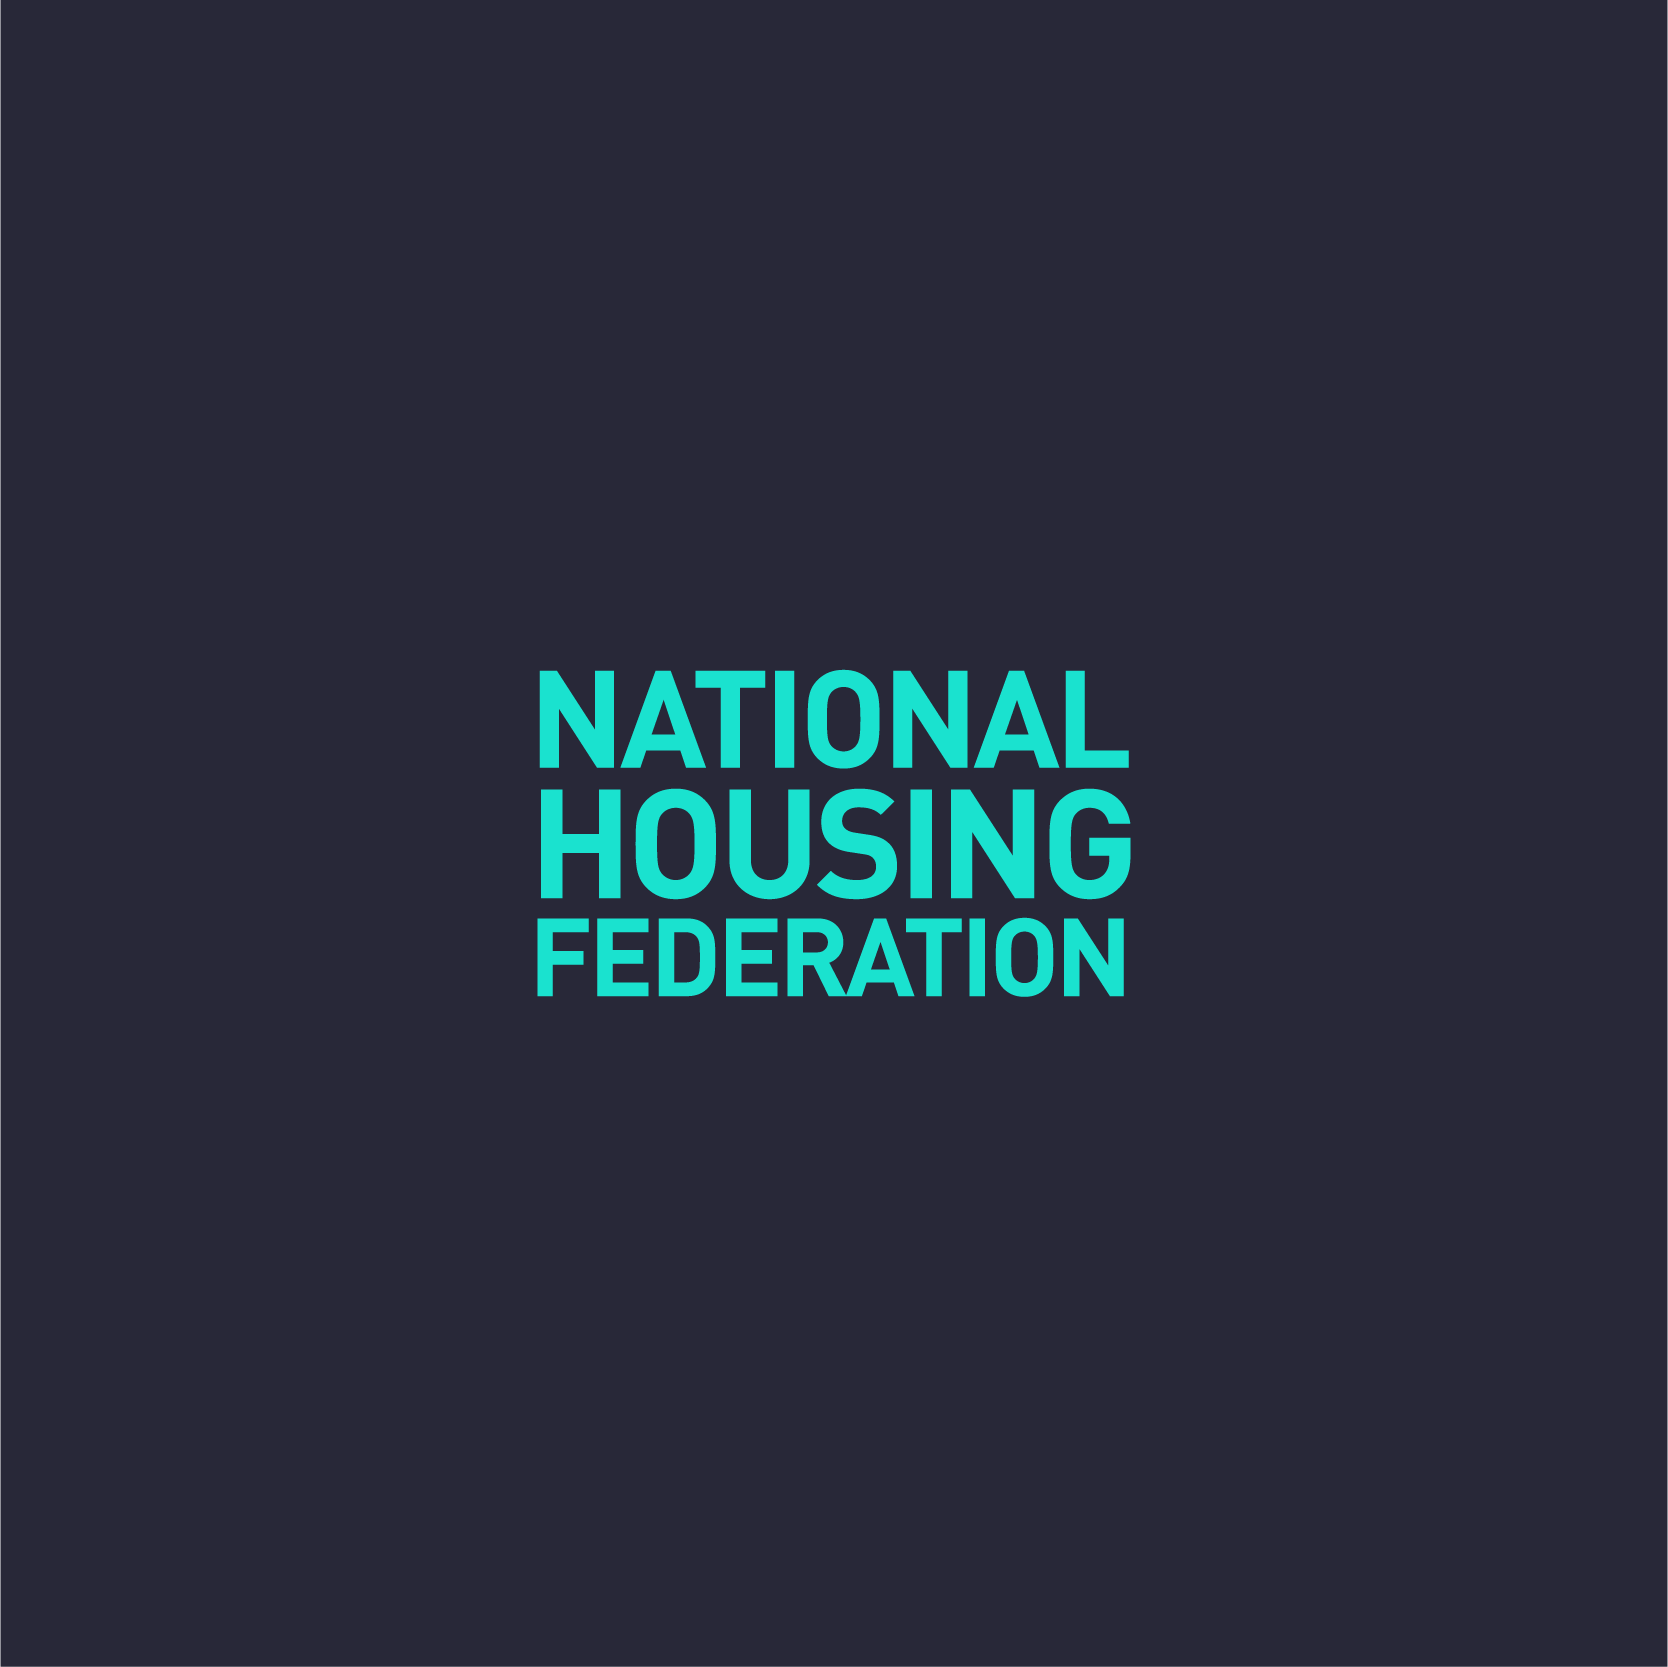 Logos_National_Housing_Federation_Logo.png